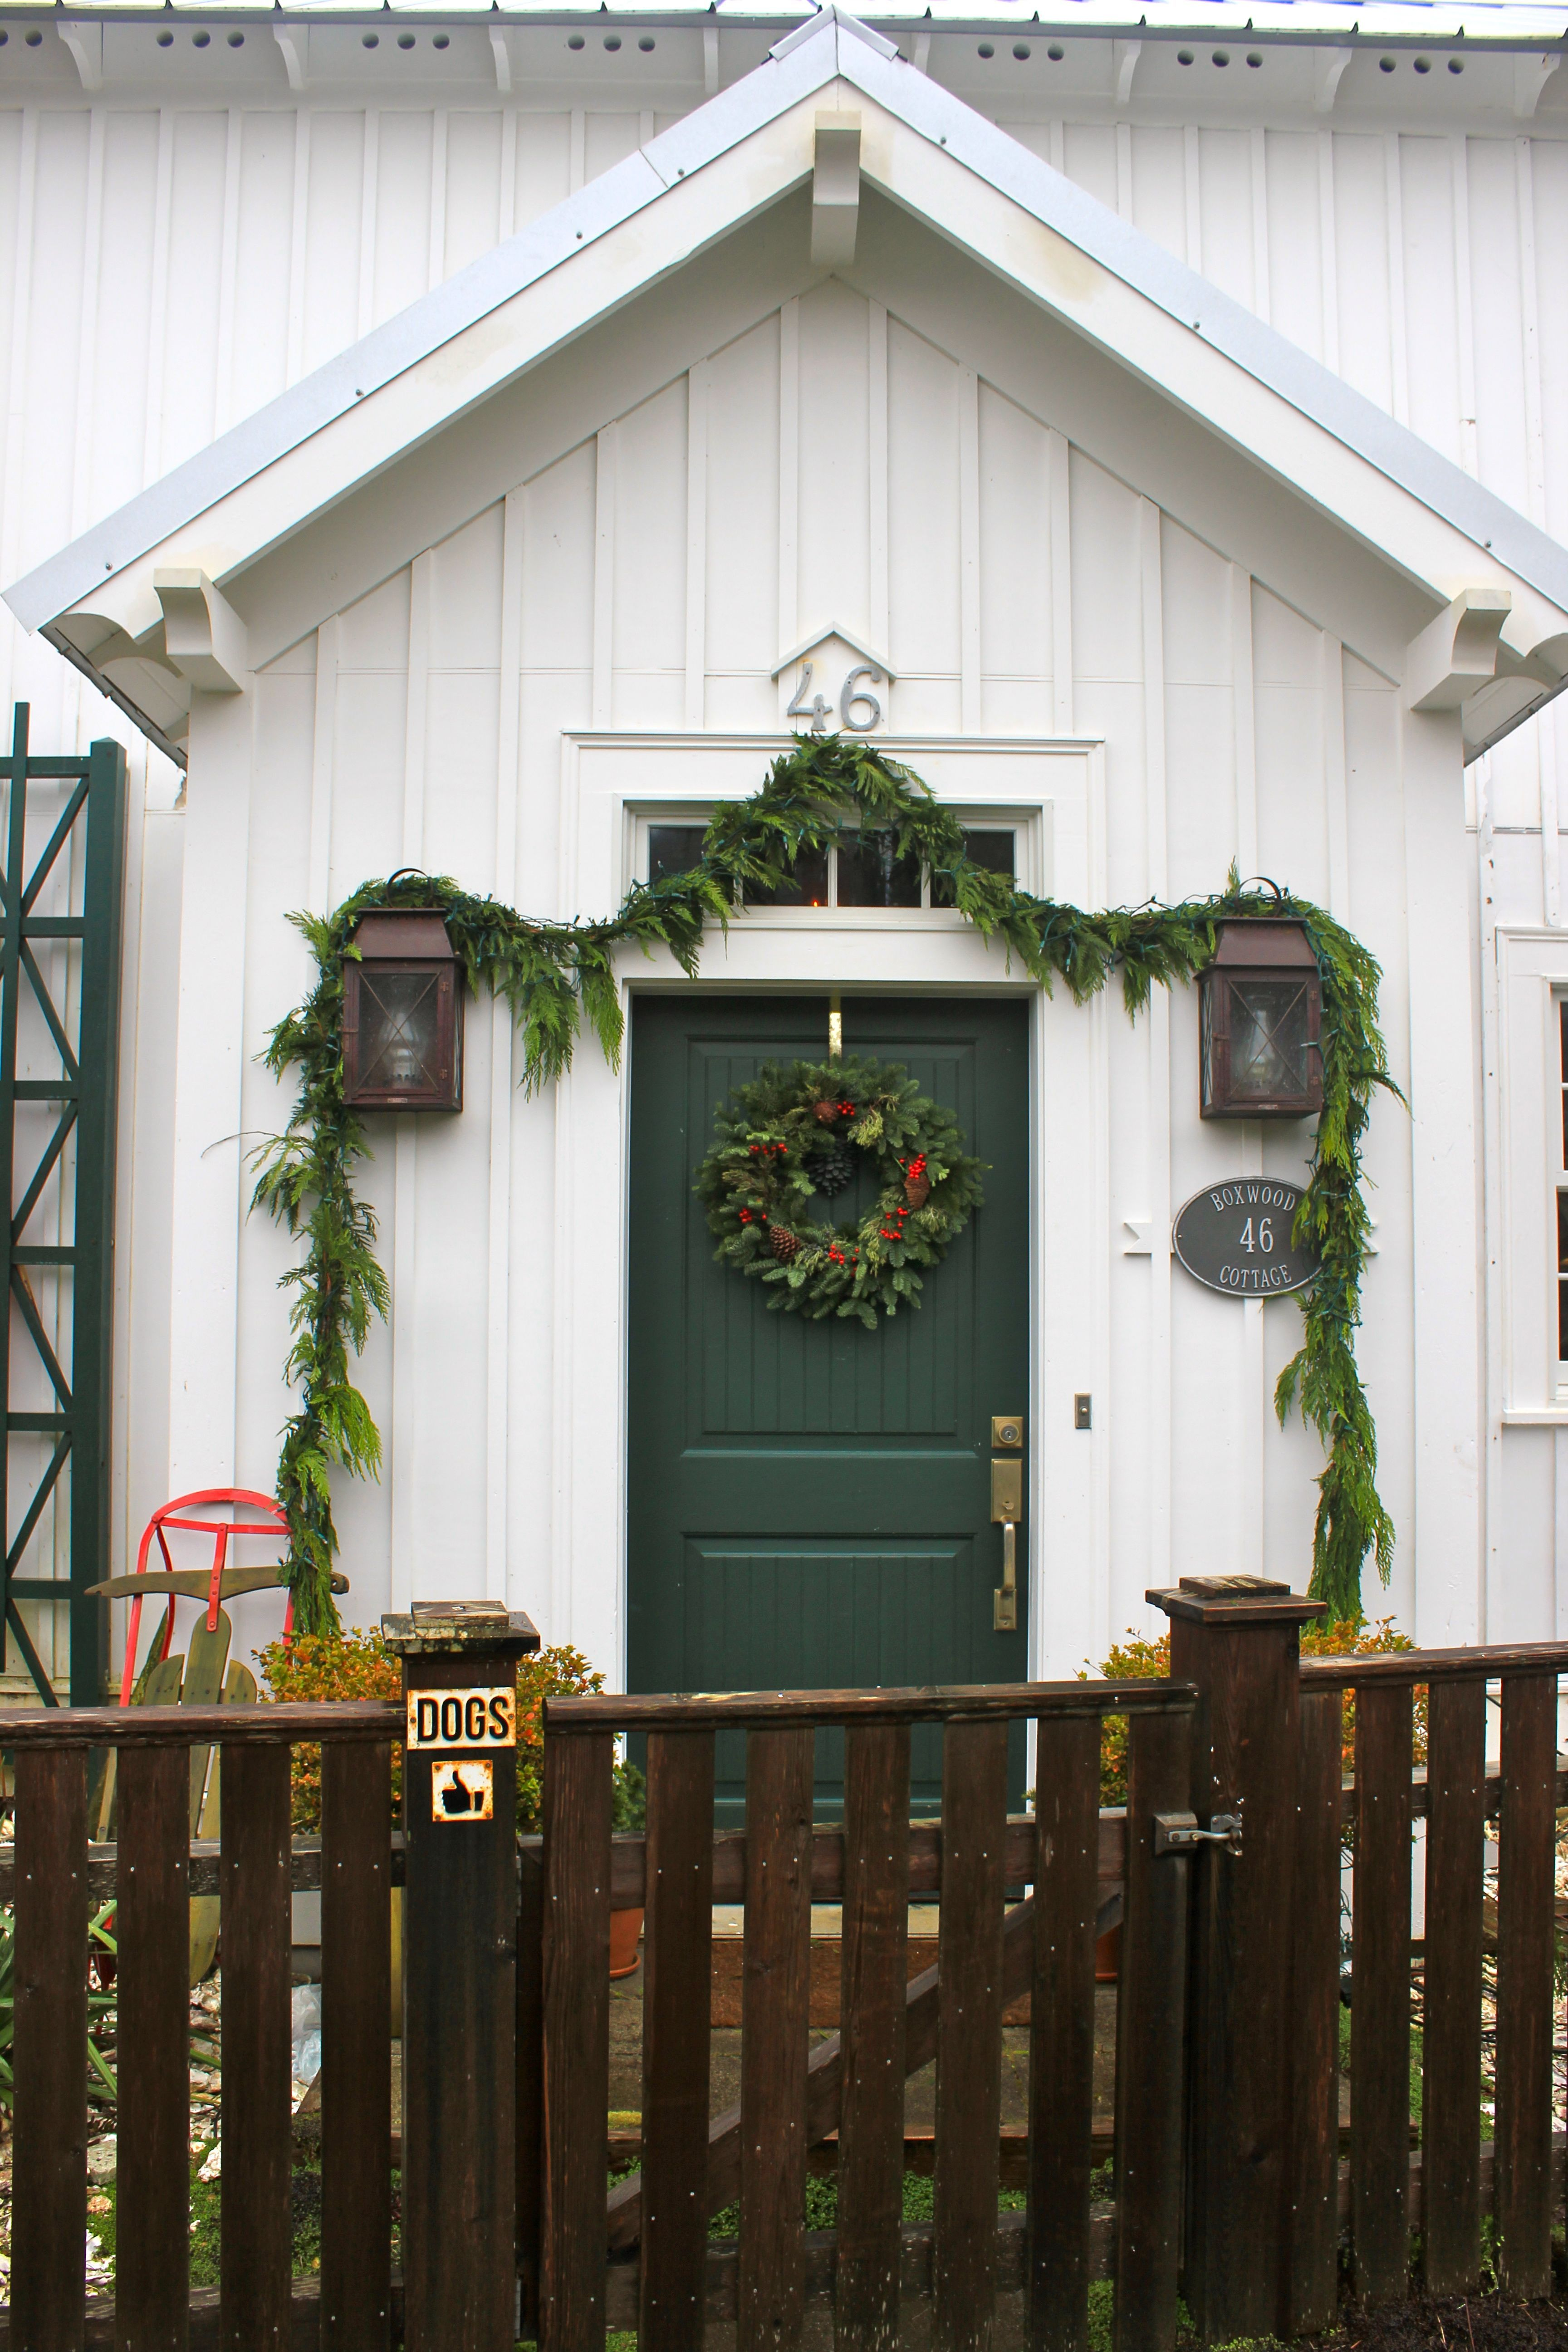 White dark green door beach house exterior paint and trim ideas garland christmas sled - White house green trim ...